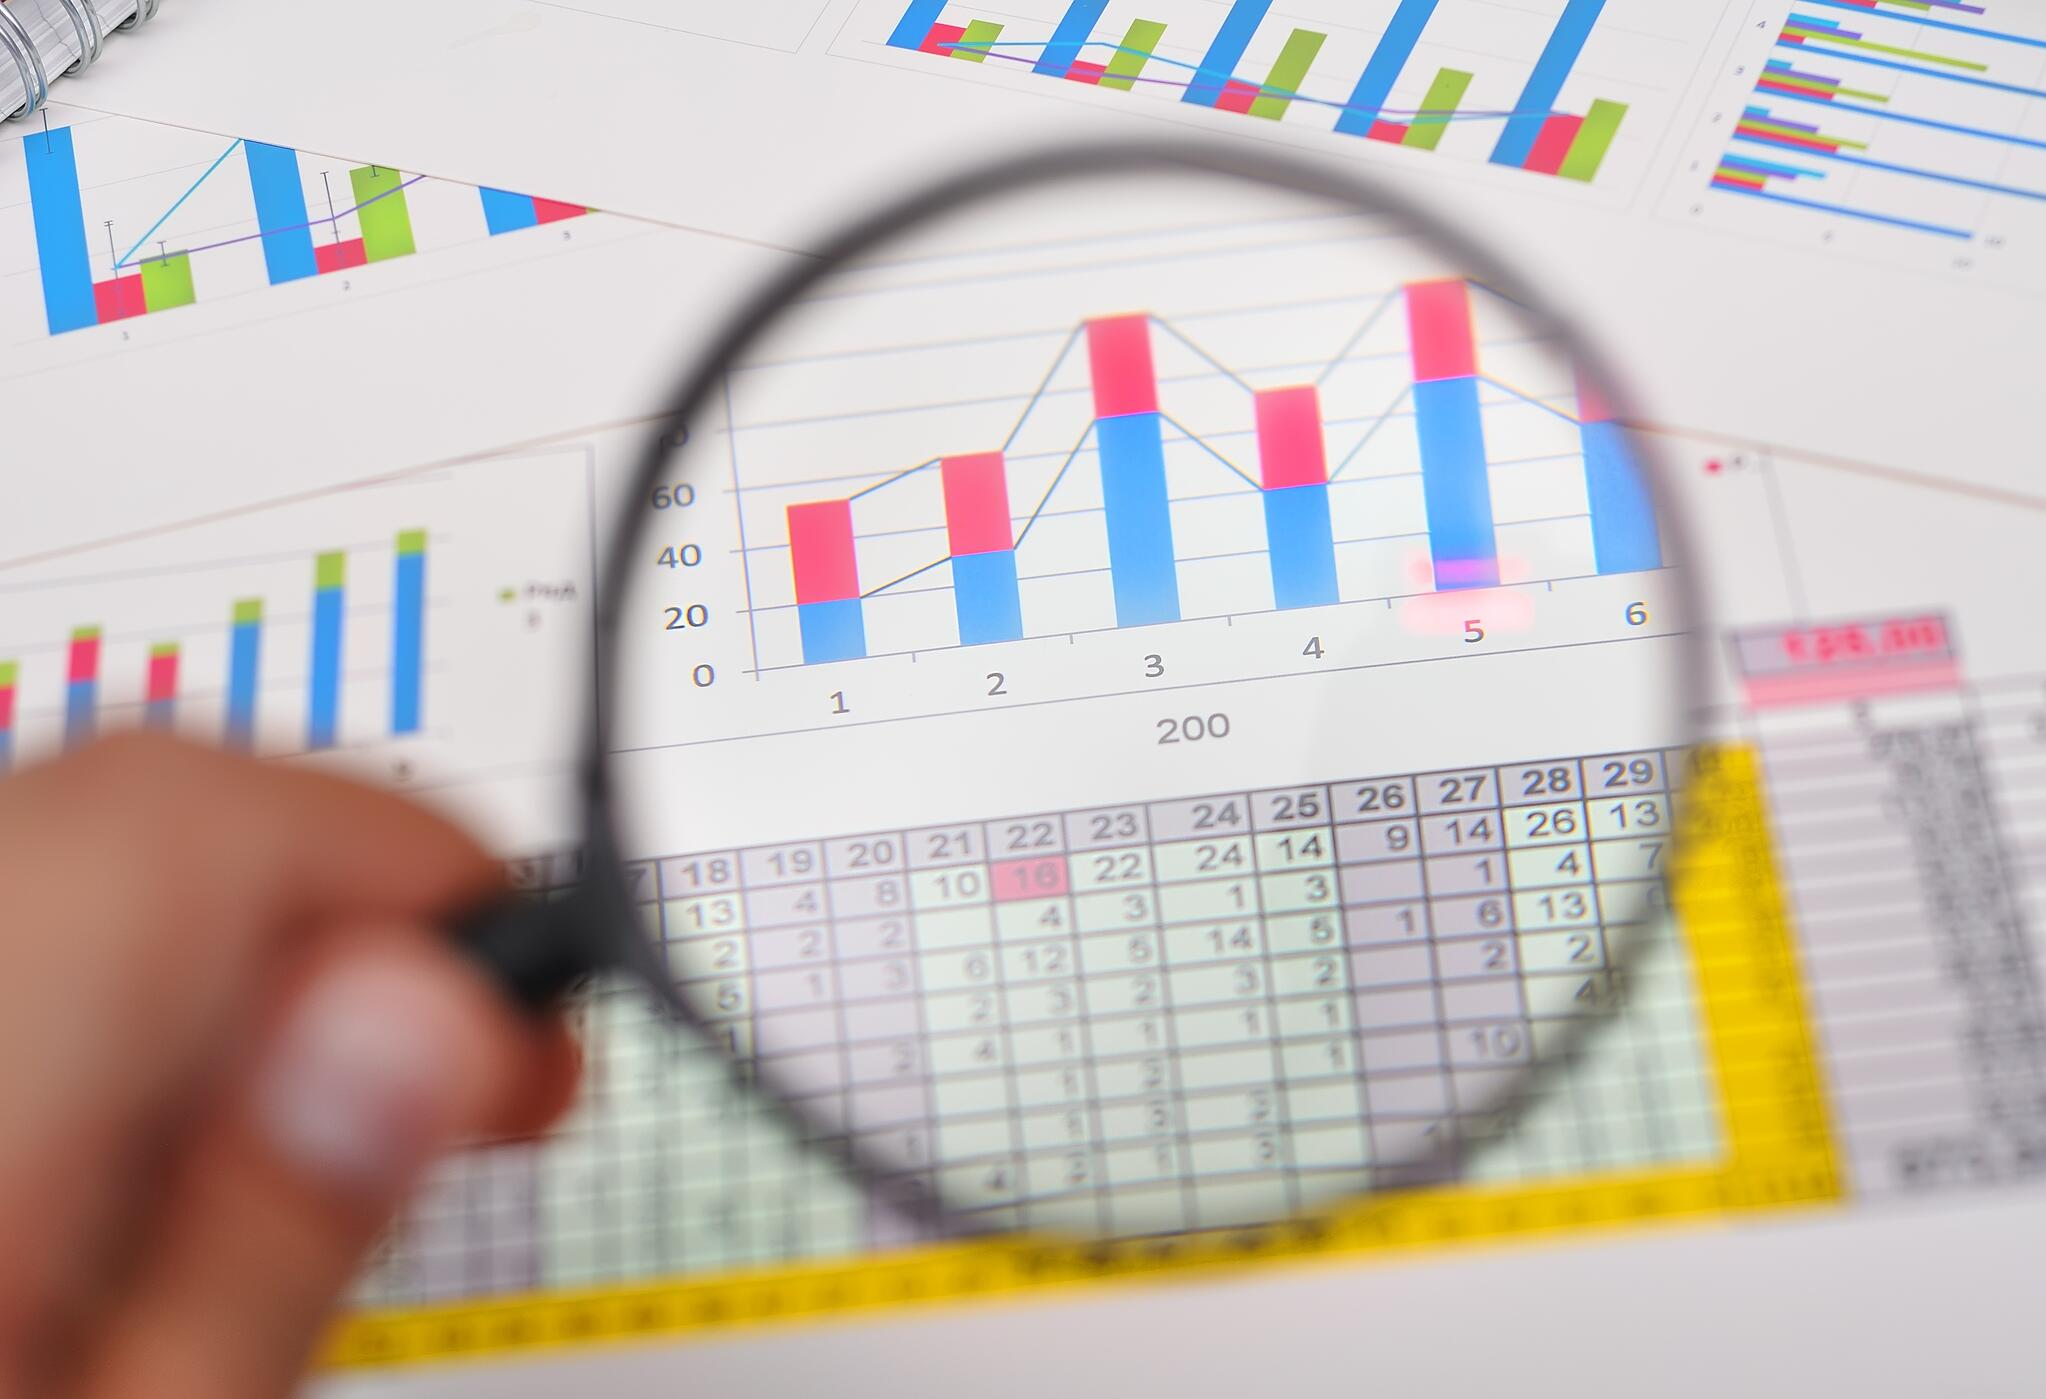 How to track trends in your industry